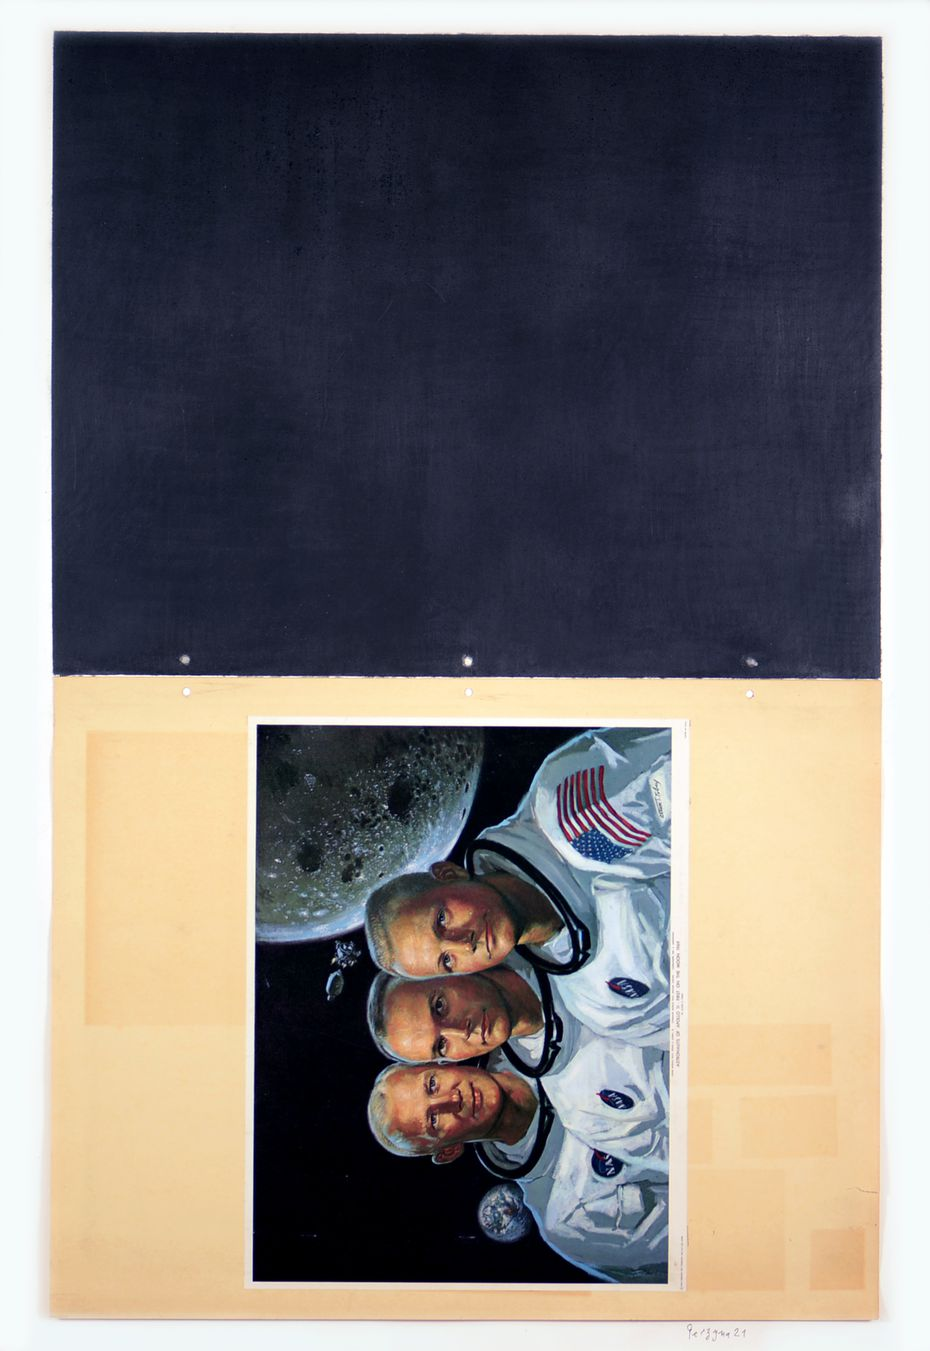 """Bogdan Perzynski's """"Surface Drawing #29"""" features the crew of Apollo 11."""